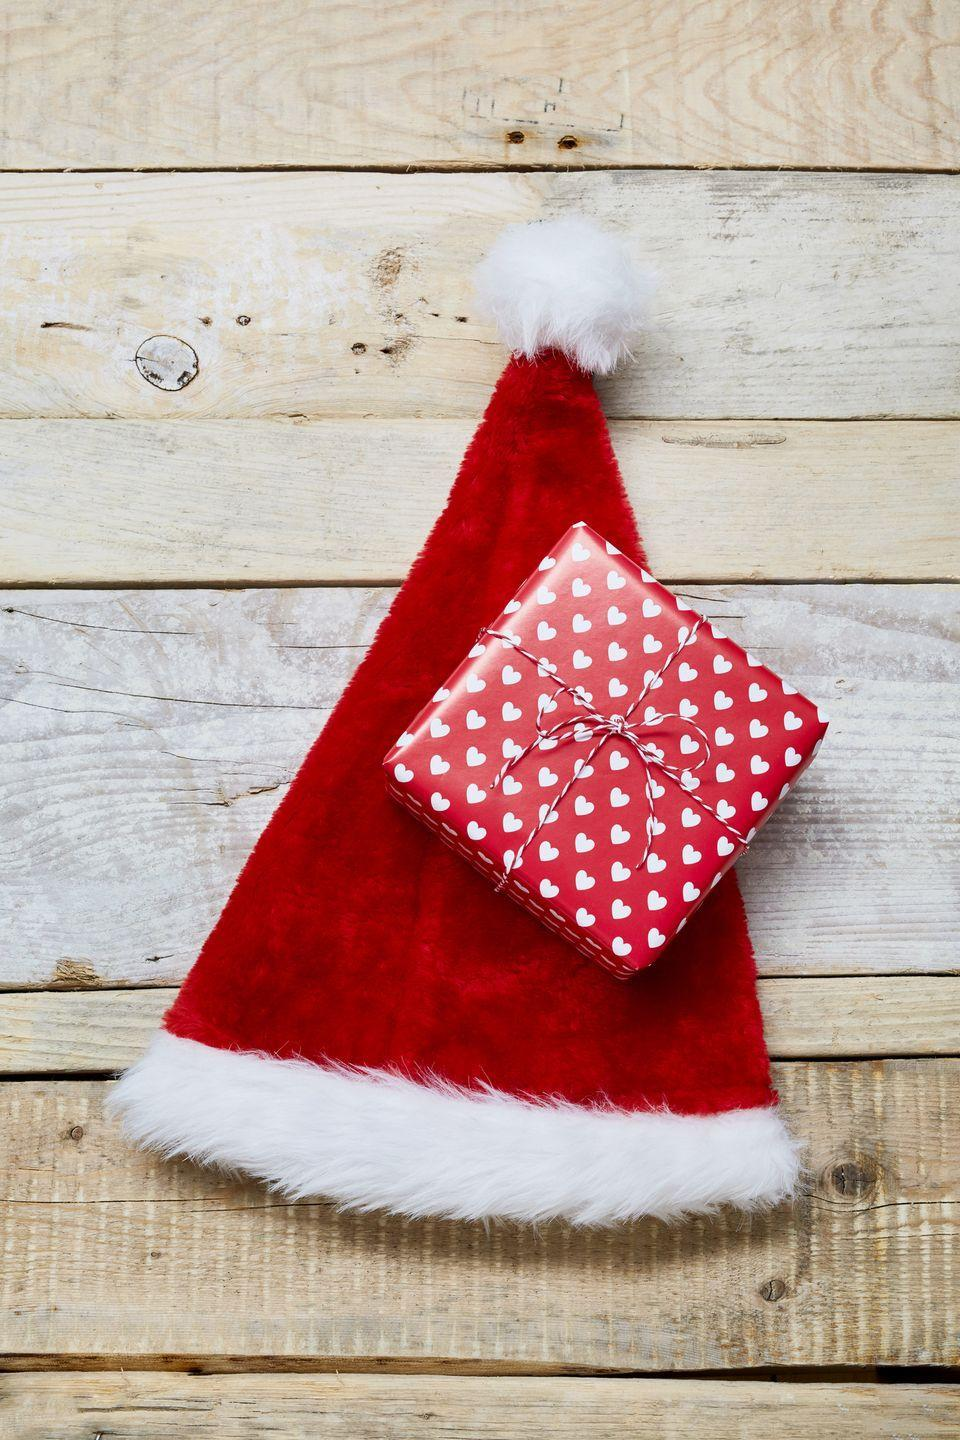 """<p>At the beginning of the party, each person is given a Santa hat and a piece of paper. However, only one person is """"it"""" and whenever they take their hat off, everyone else must follow suit. The last person with their hat on loses. </p><p><strong><a class=""""link rapid-noclick-resp"""" href=""""https://www.amazon.com/BALORAY-Adults-Comfort-Double-Velvet/dp/B07DCVM6H1/?tag=syn-yahoo-20&ascsubtag=%5Bartid%7C10050.g.22718533%5Bsrc%7Cyahoo-us"""" rel=""""nofollow noopener"""" target=""""_blank"""" data-ylk=""""slk:SHOP SANTA HATS"""">SHOP SANTA HATS</a><br></strong></p>"""